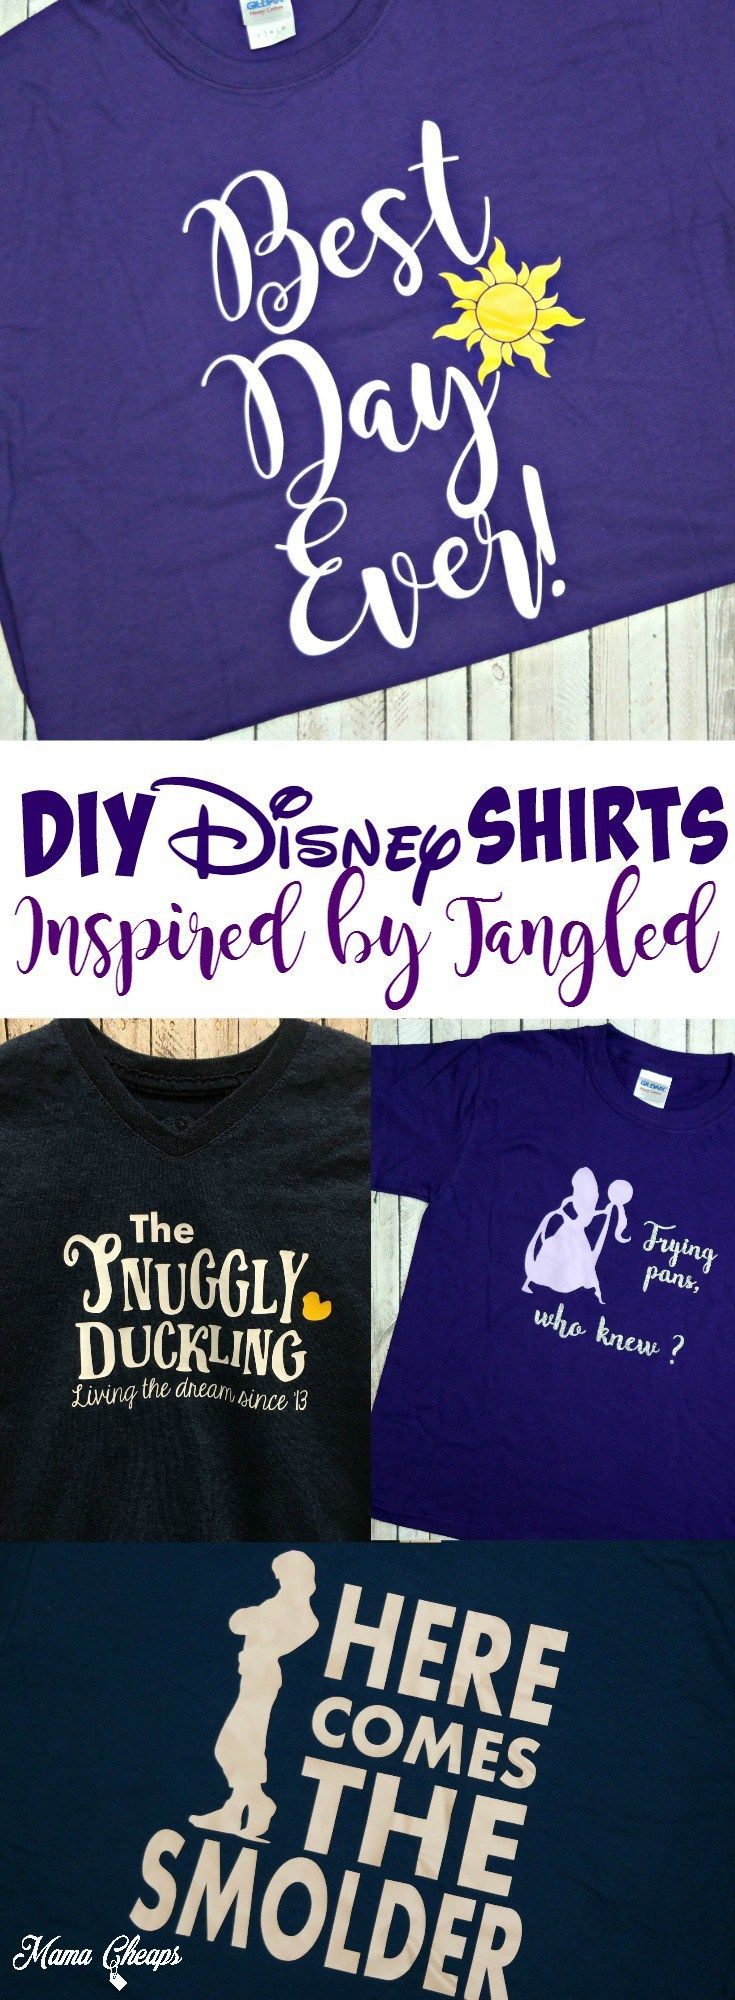 diy-disney-shirts-for-family-inspired-by-tangled-rapunzel-movie